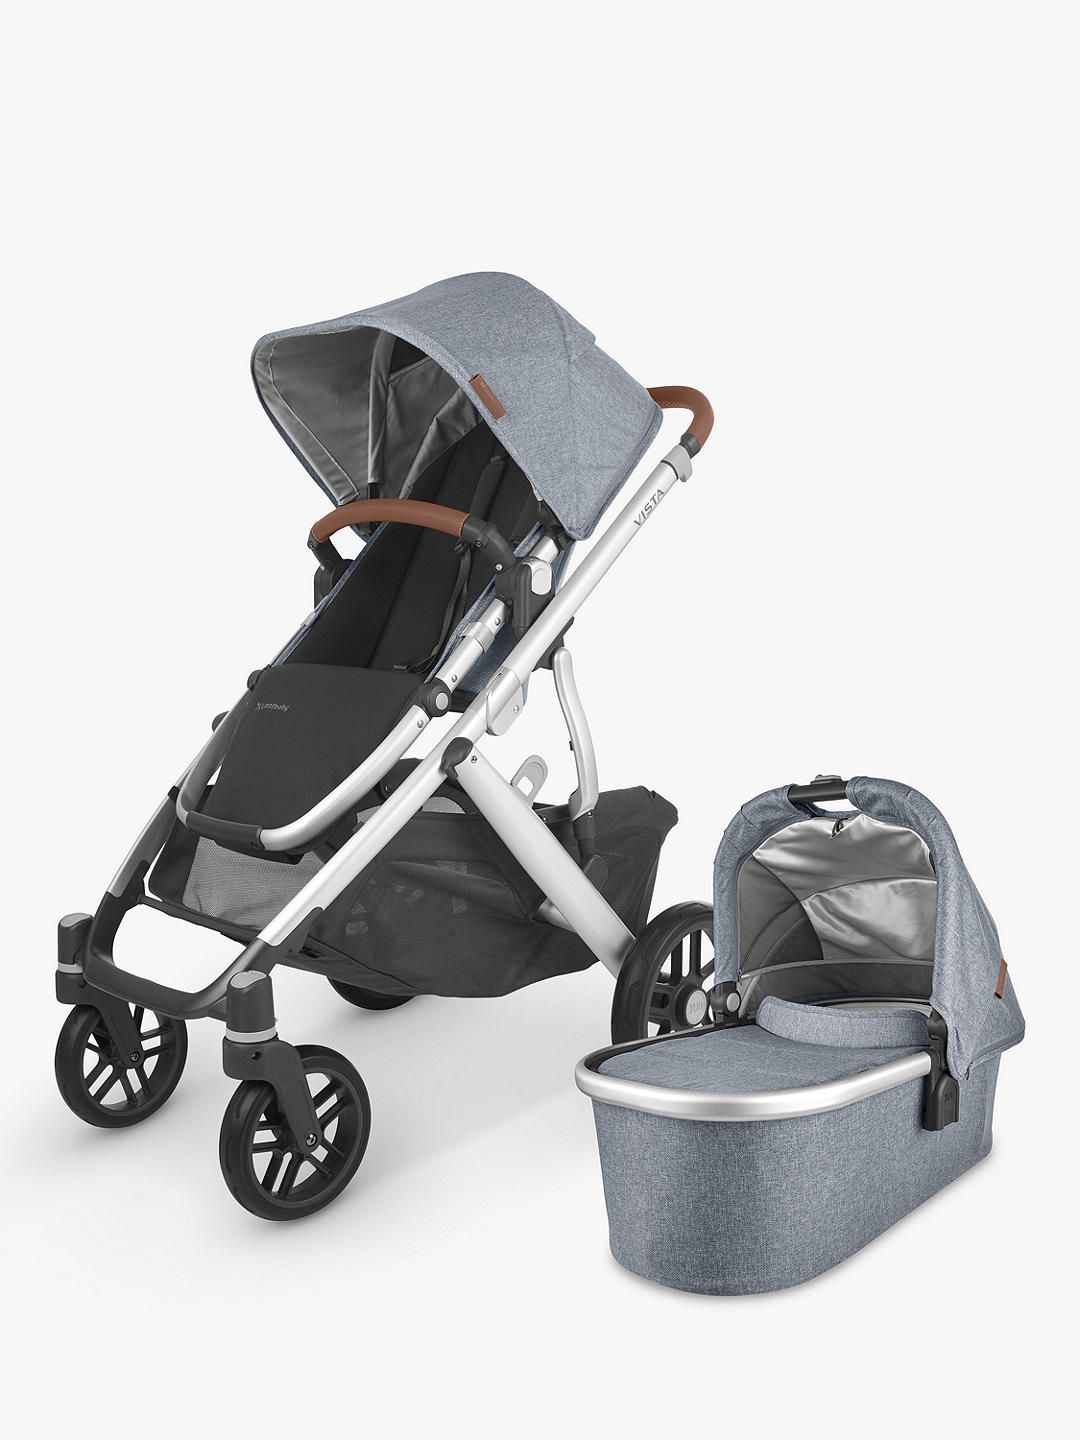 Pin on Prams